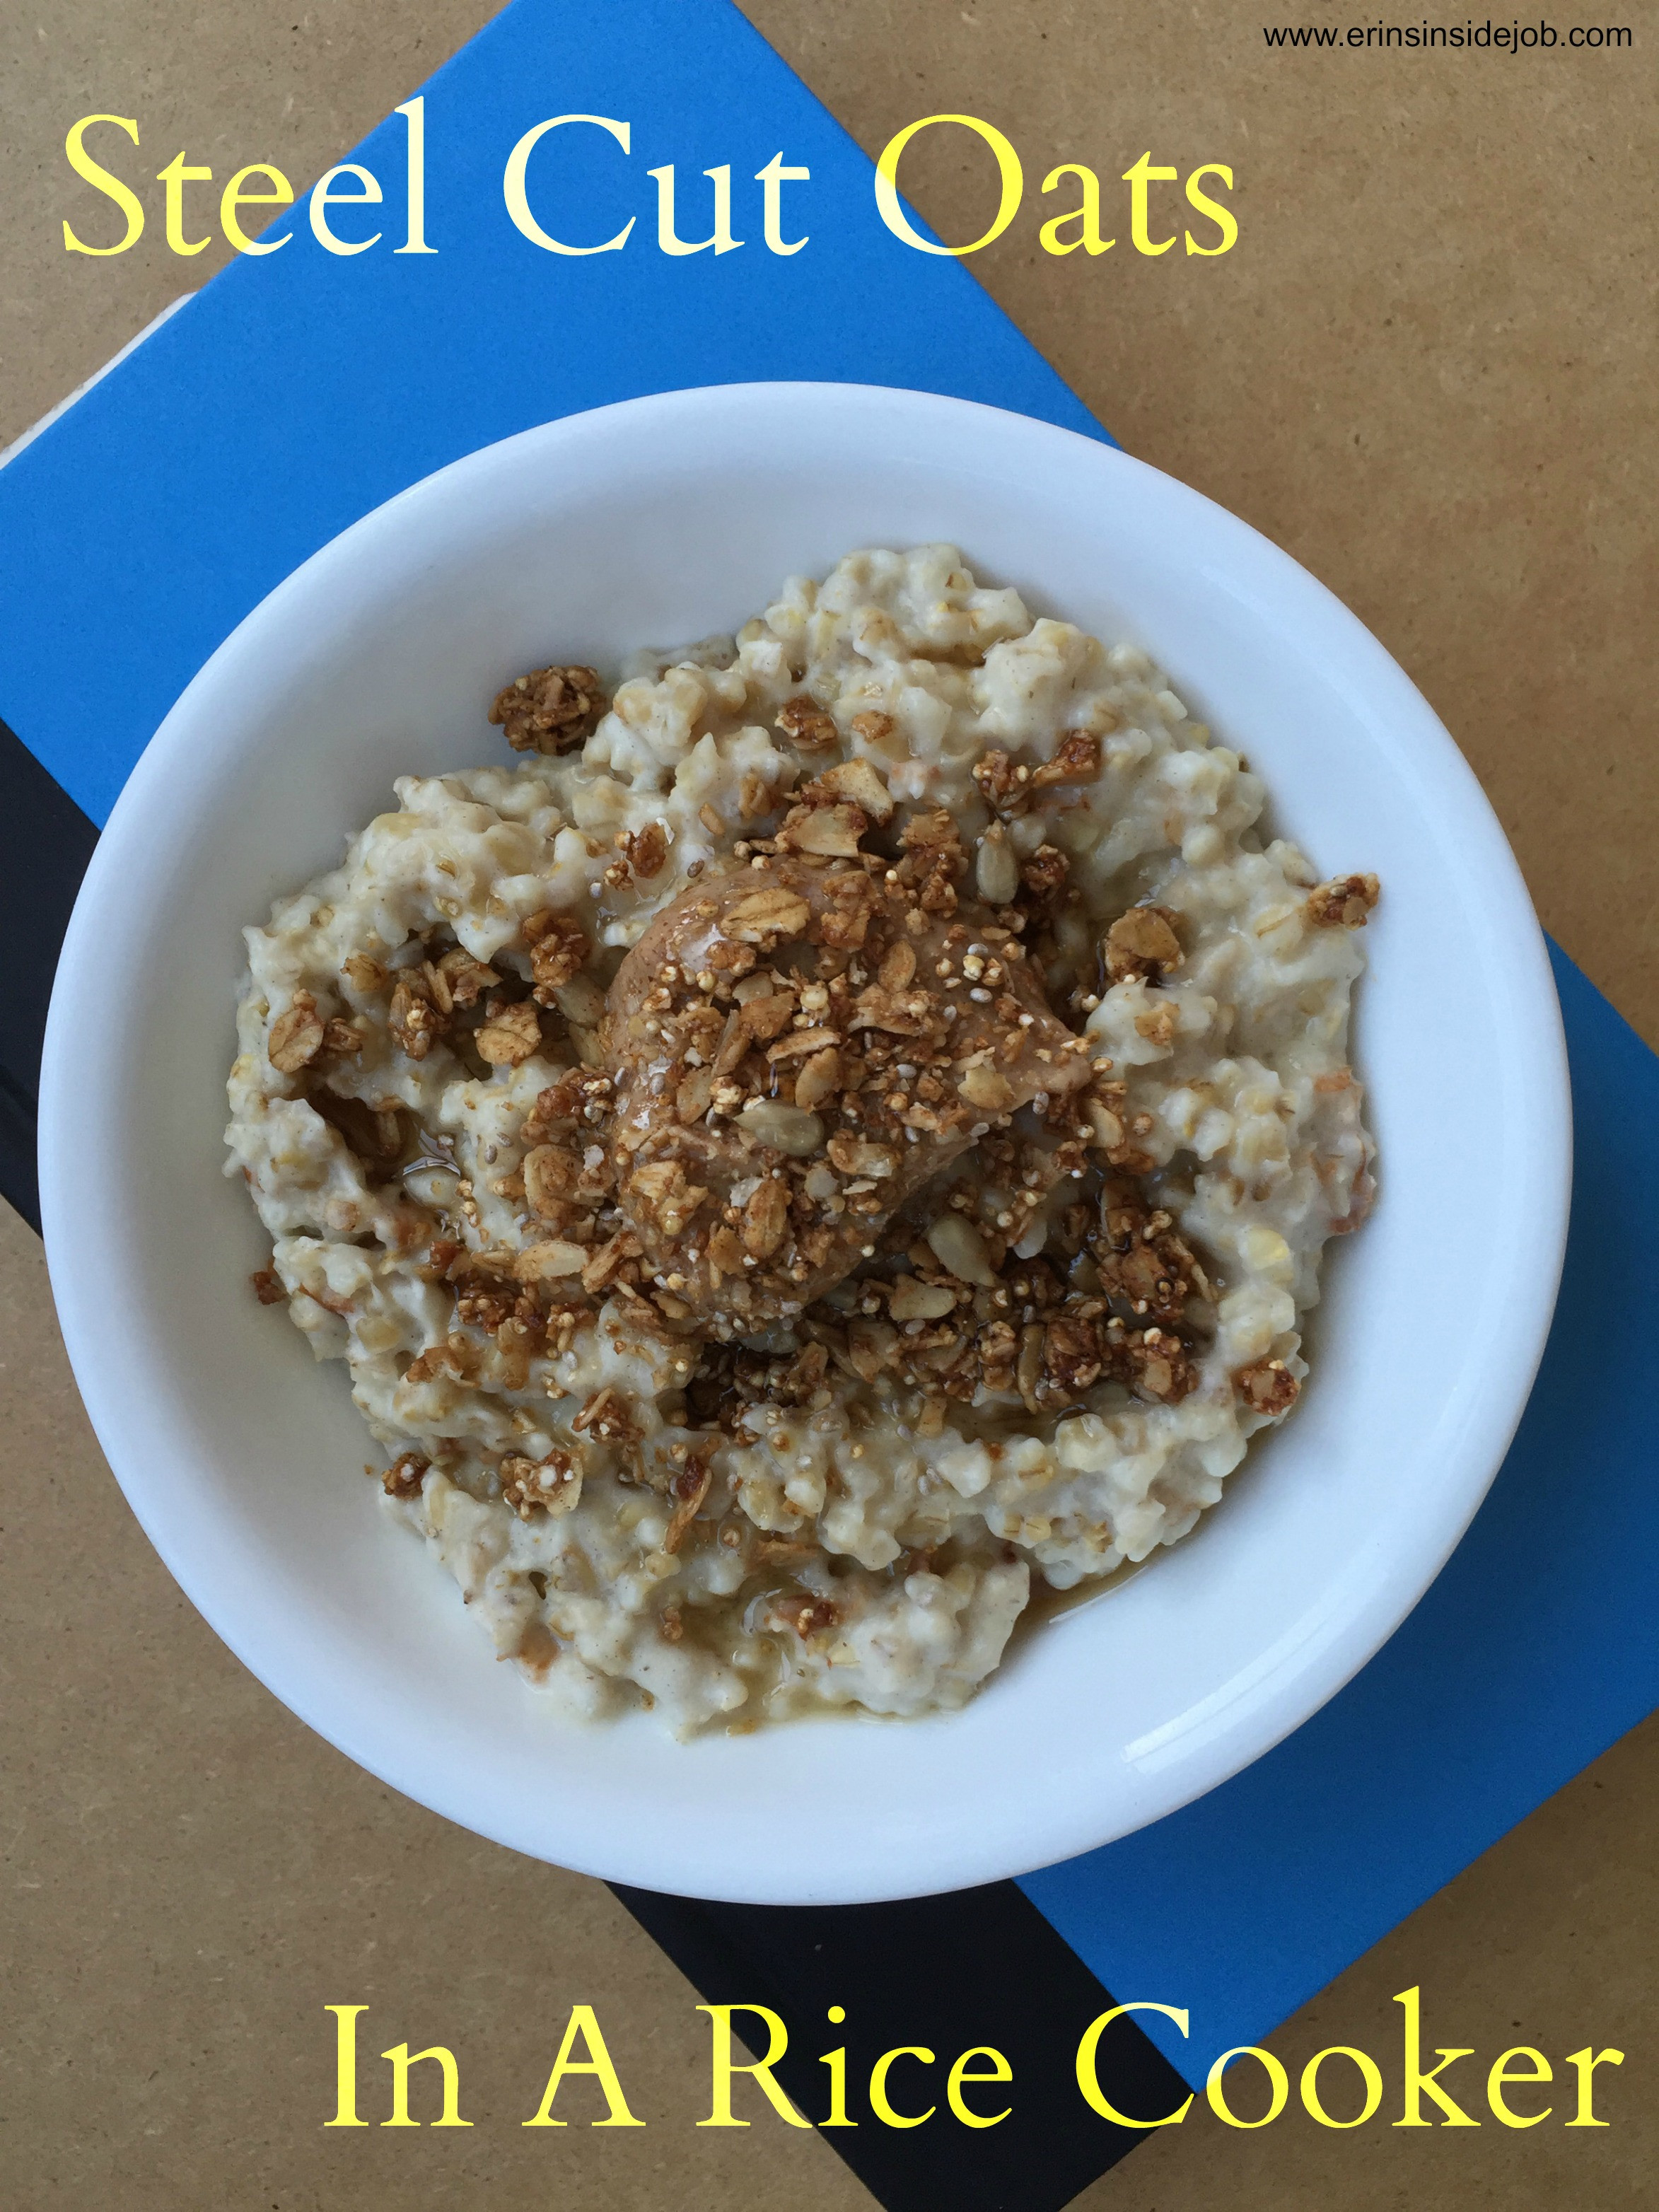 Steel Cut Oats In Rice Cooker  How To Make Steel Cut Oats in a Rice Cooker Erin s